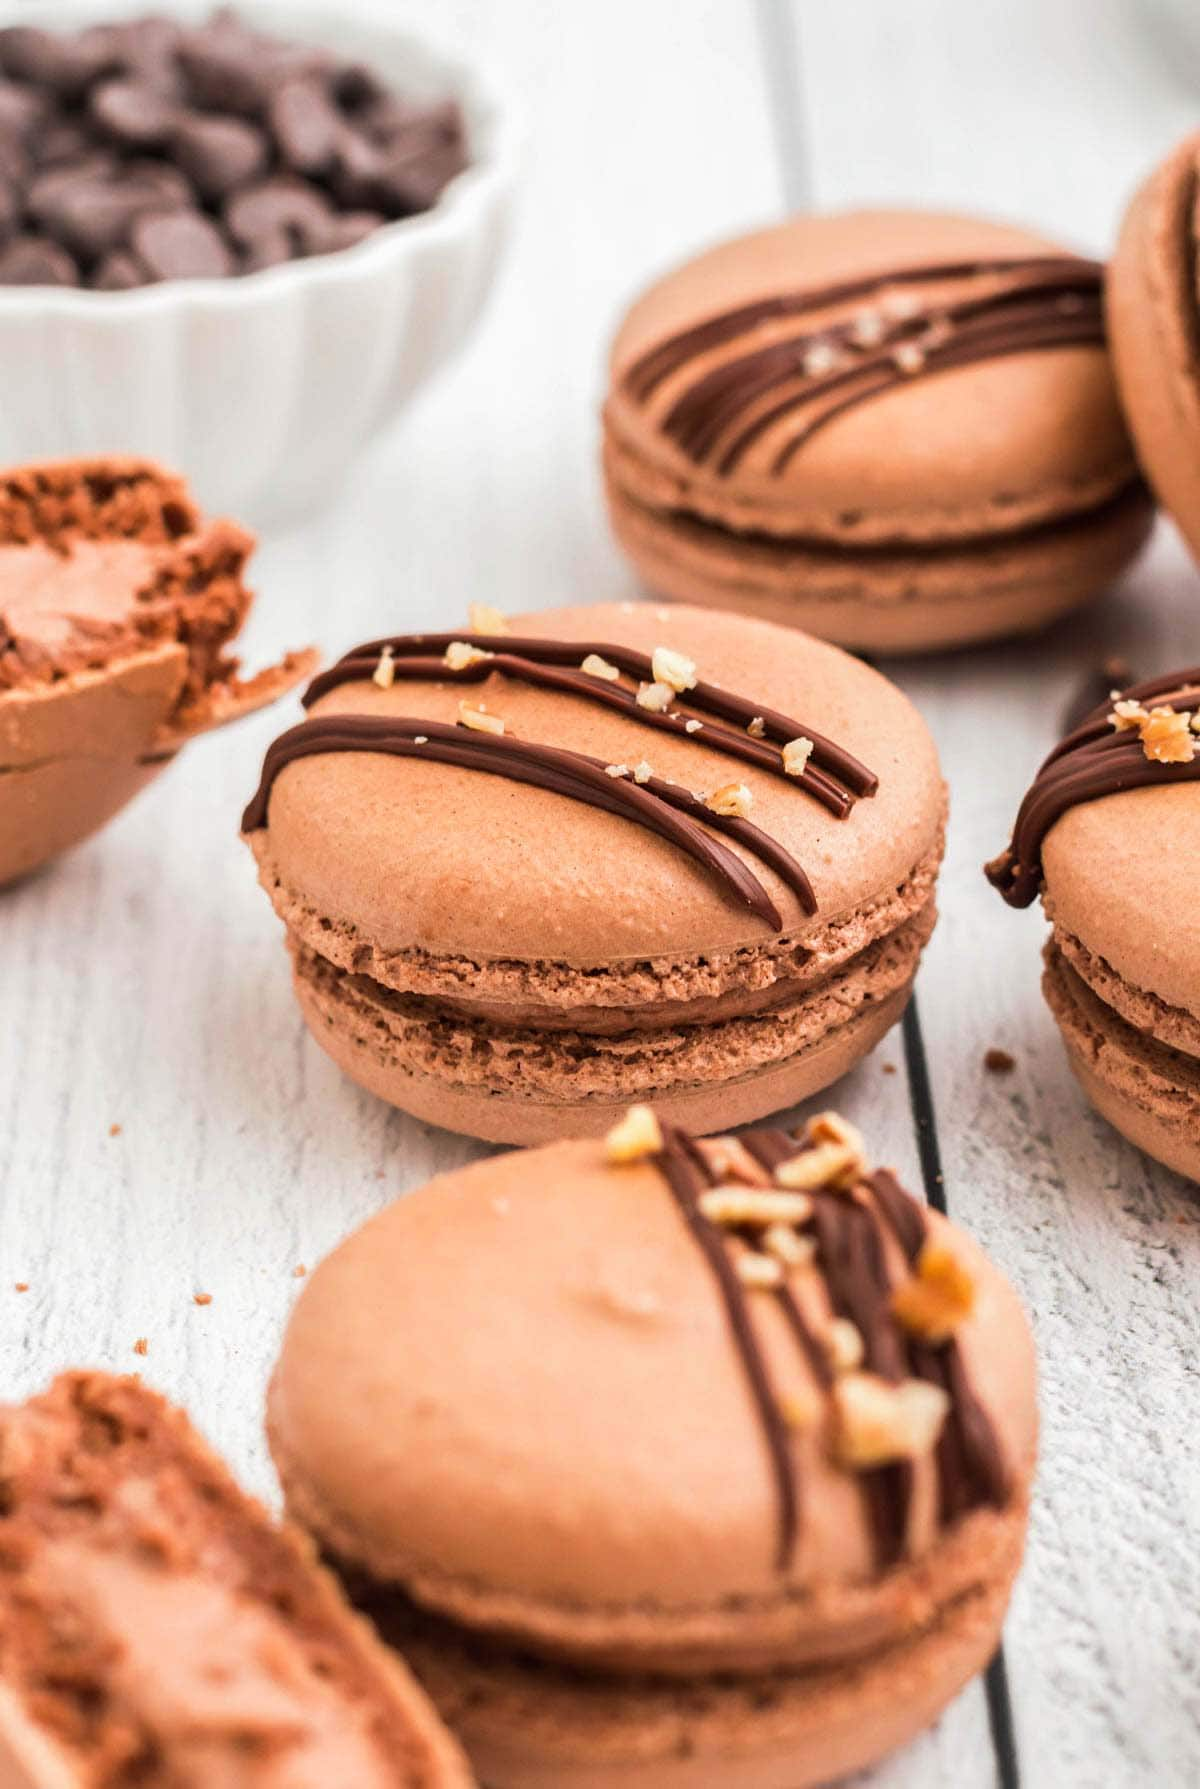 A few chocolate macarons on a white wooden board